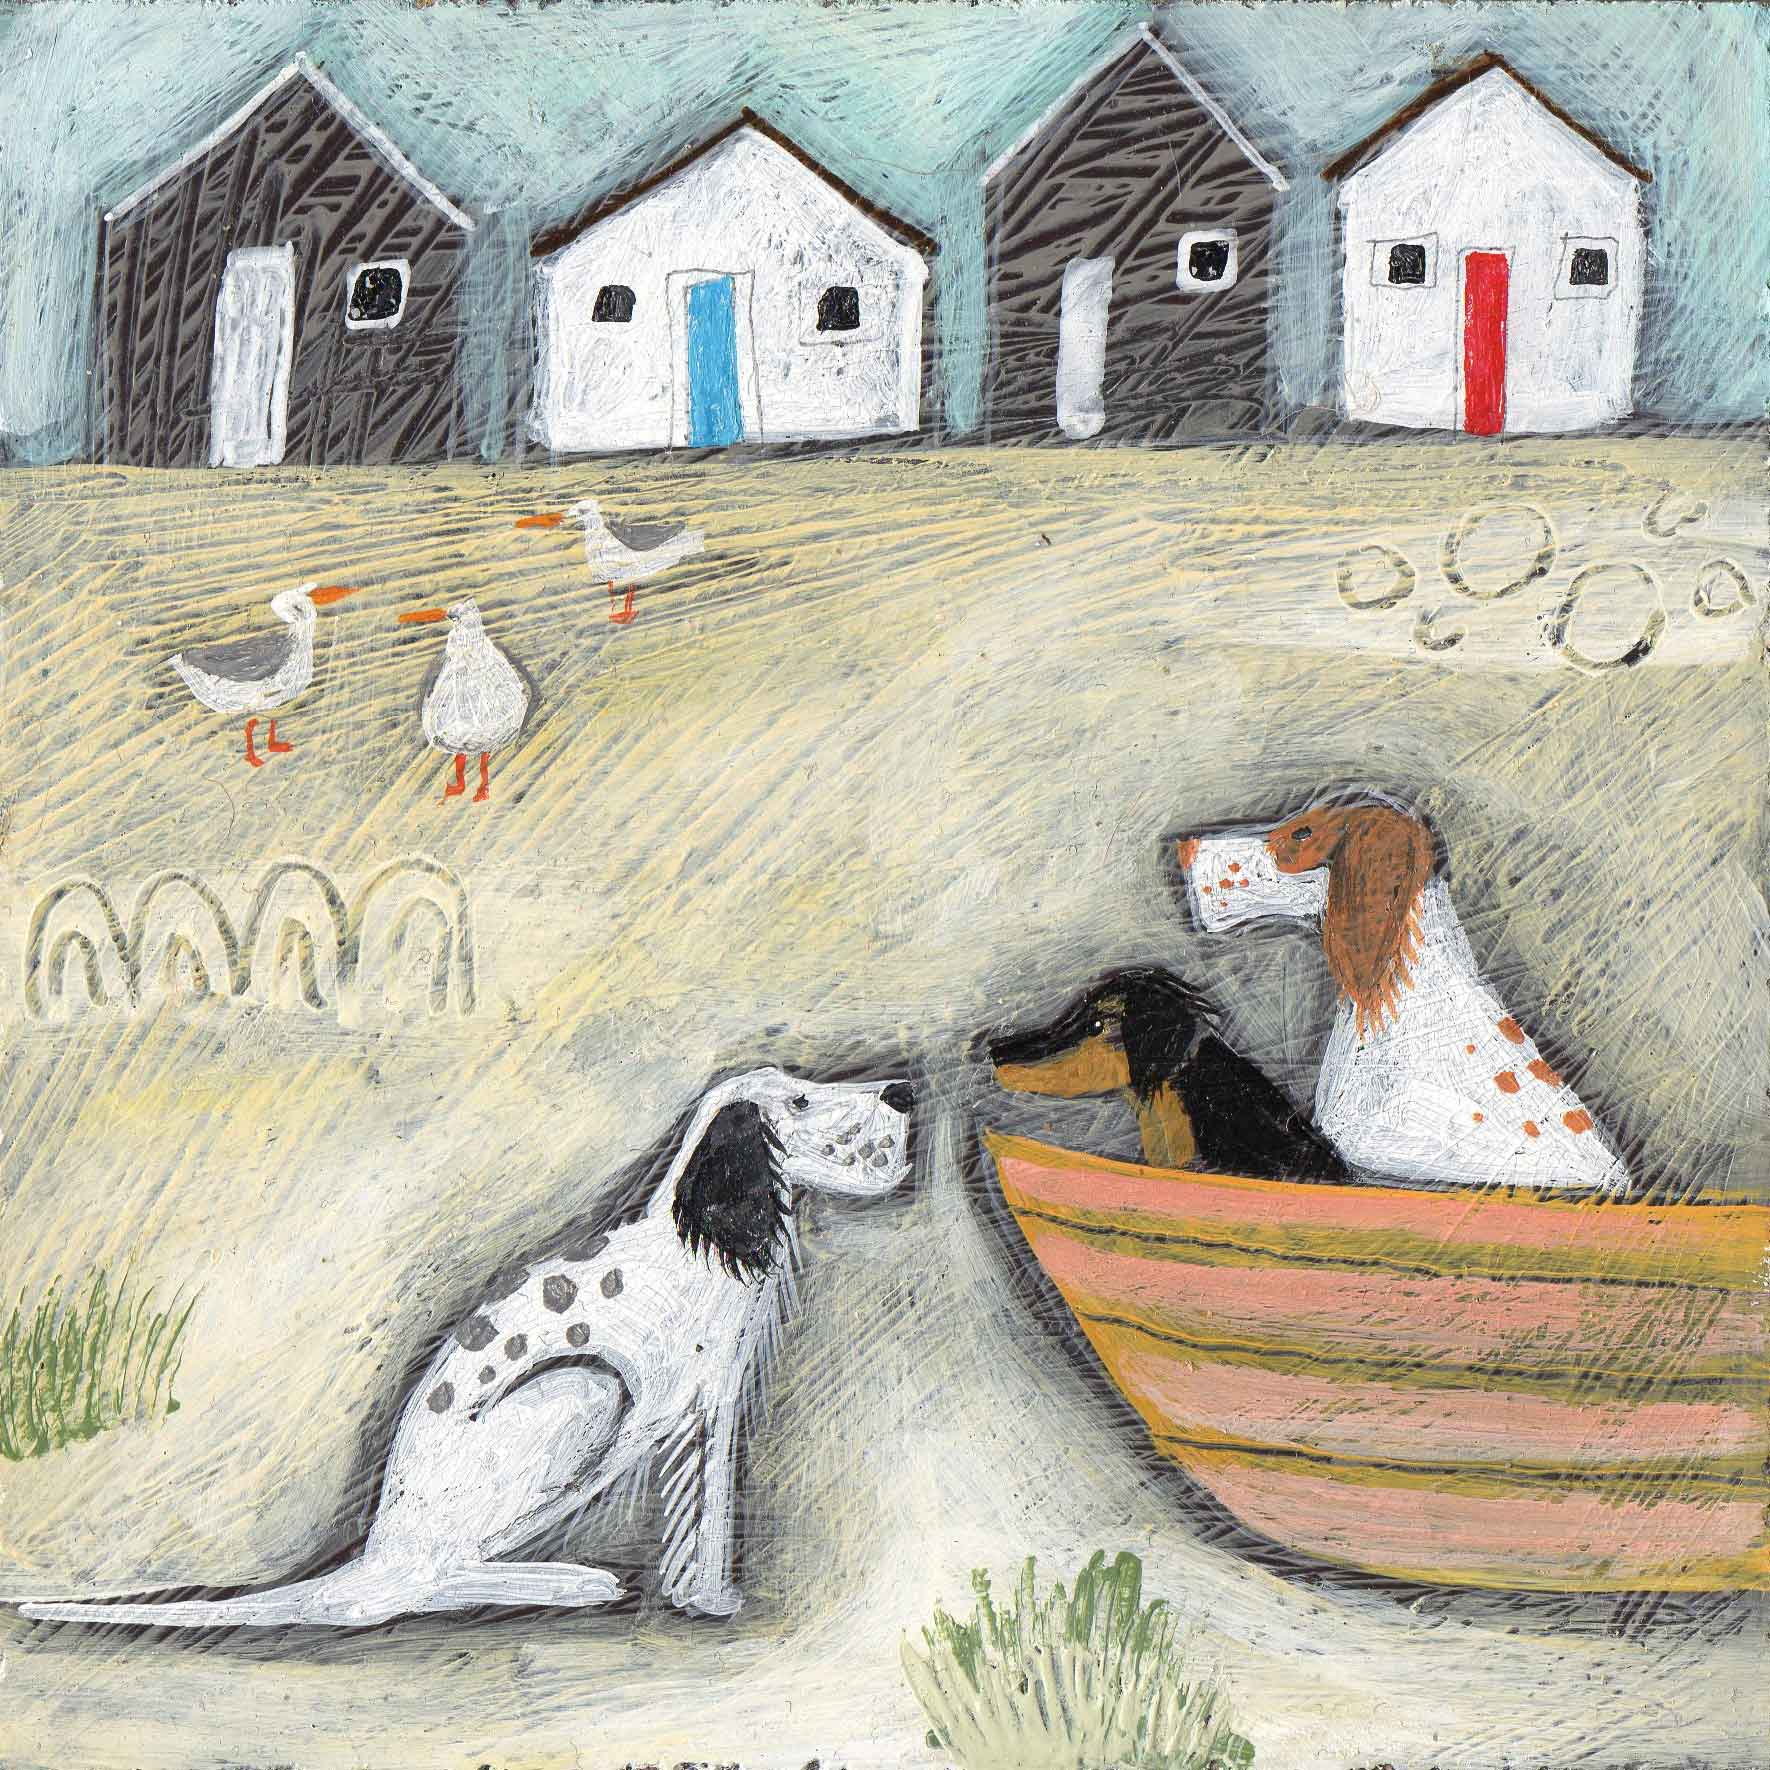 Two in a Boat by Louise Rawlings, Art Greeting Card, Gouache and Acrylic, Dogs in boat, seagulls and cottages